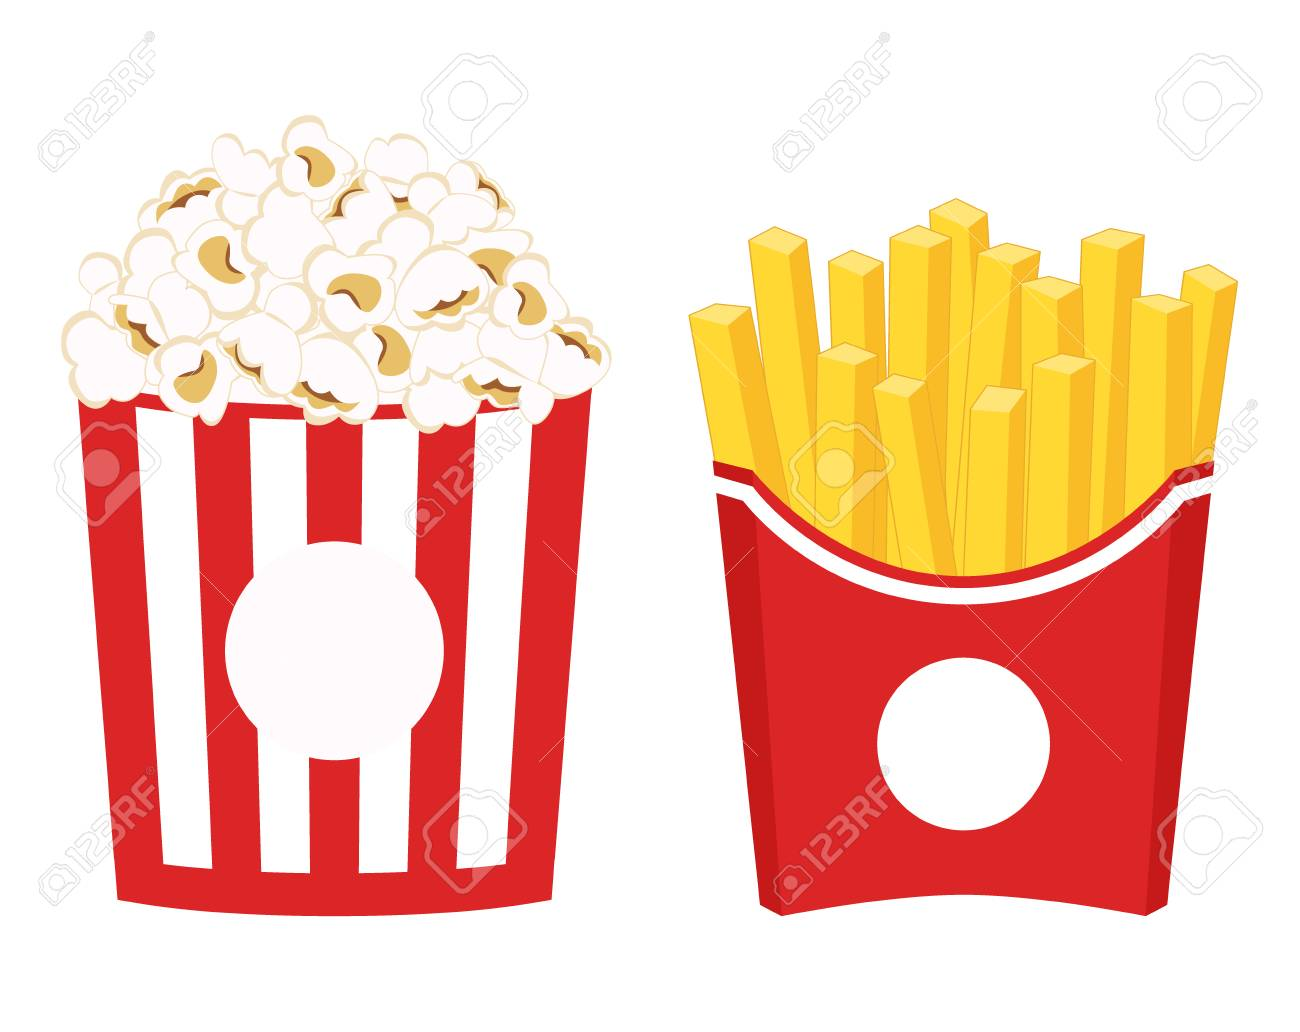 French fries and popcorn clipart. French fries and pop corn in...